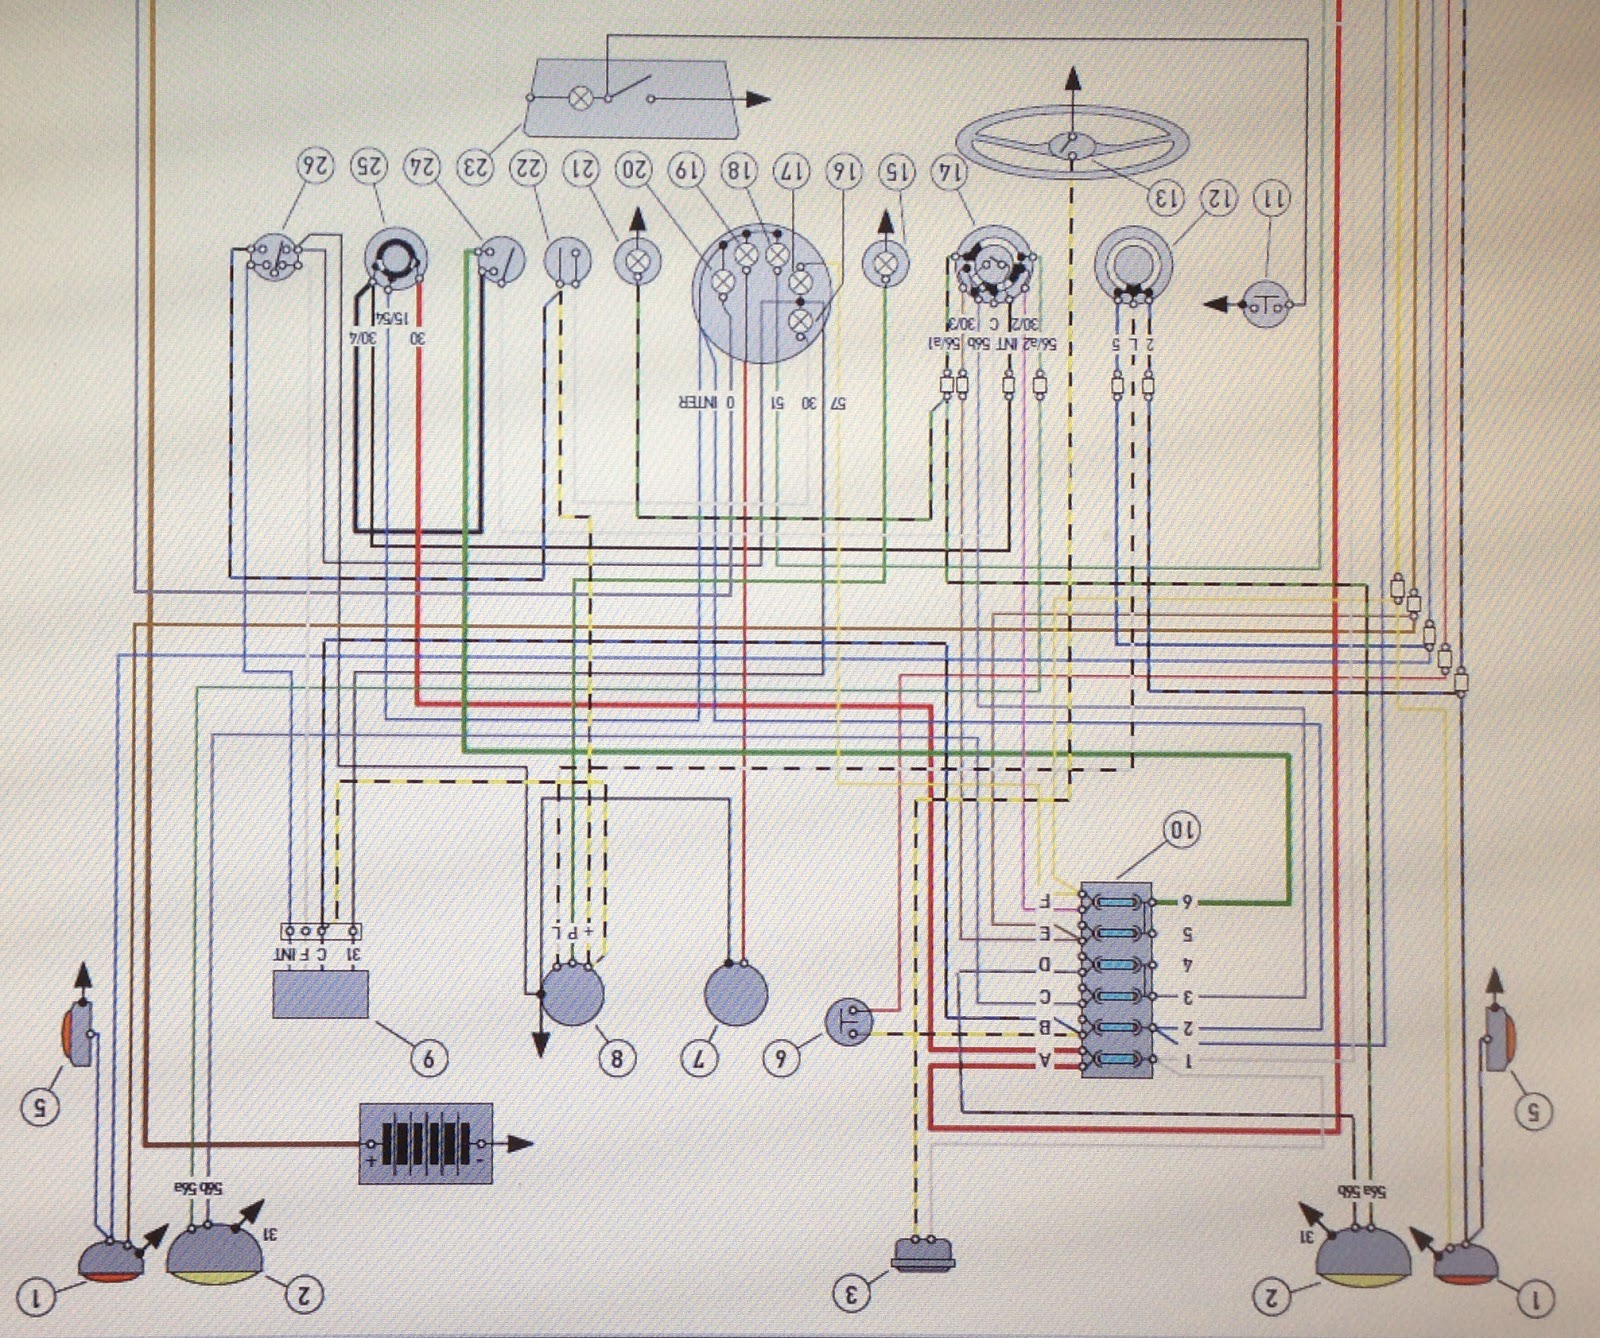 Fiat Tractor Wiring Diagrams Trusted Schematics Diagram Lawn Mower Seat Electrical 12 500 100 Ideas Yzf750r